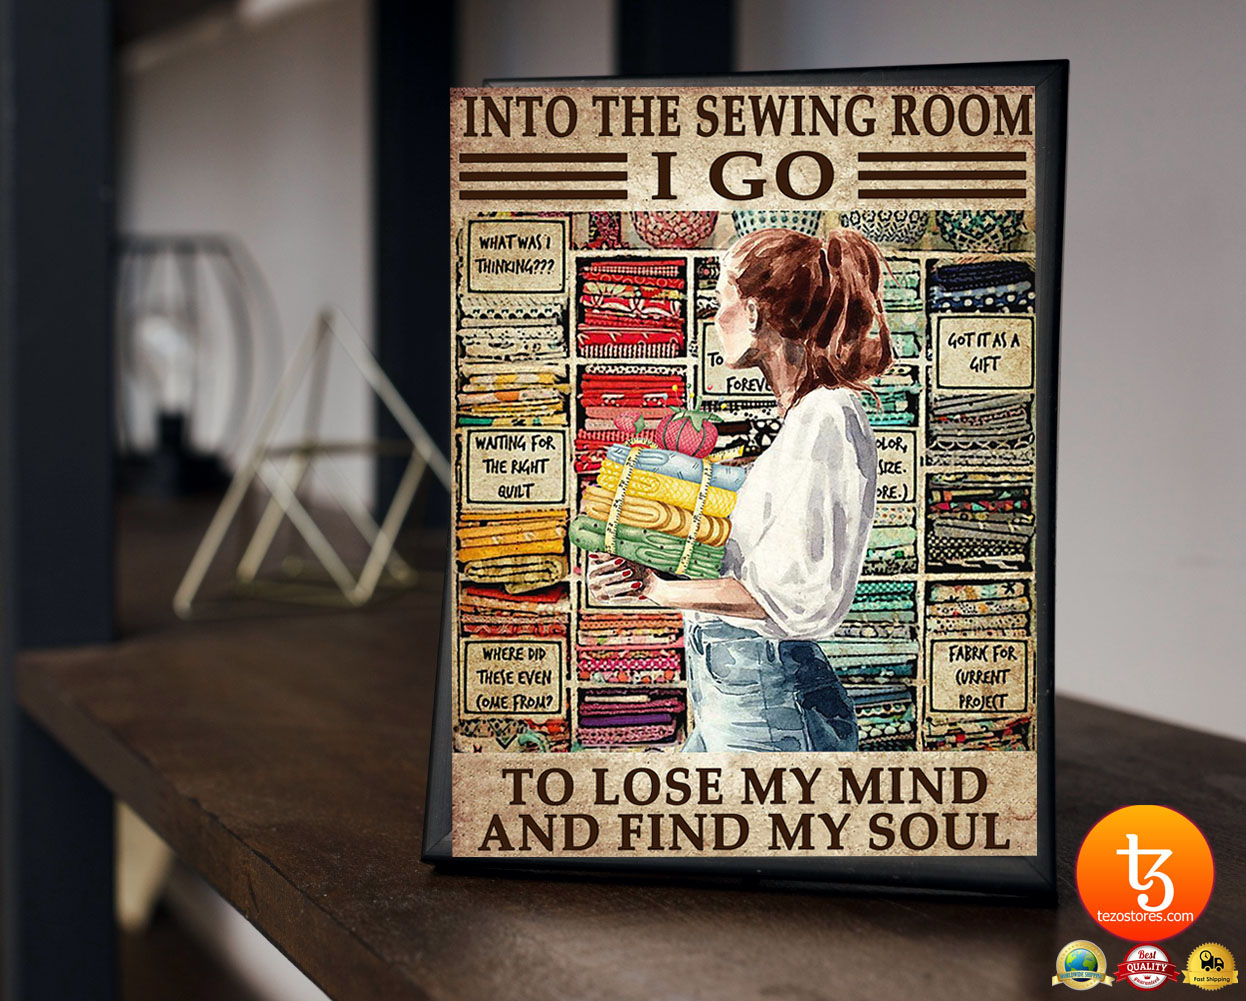 Into the sewing room I go to lose my mind and find my soul poster 16